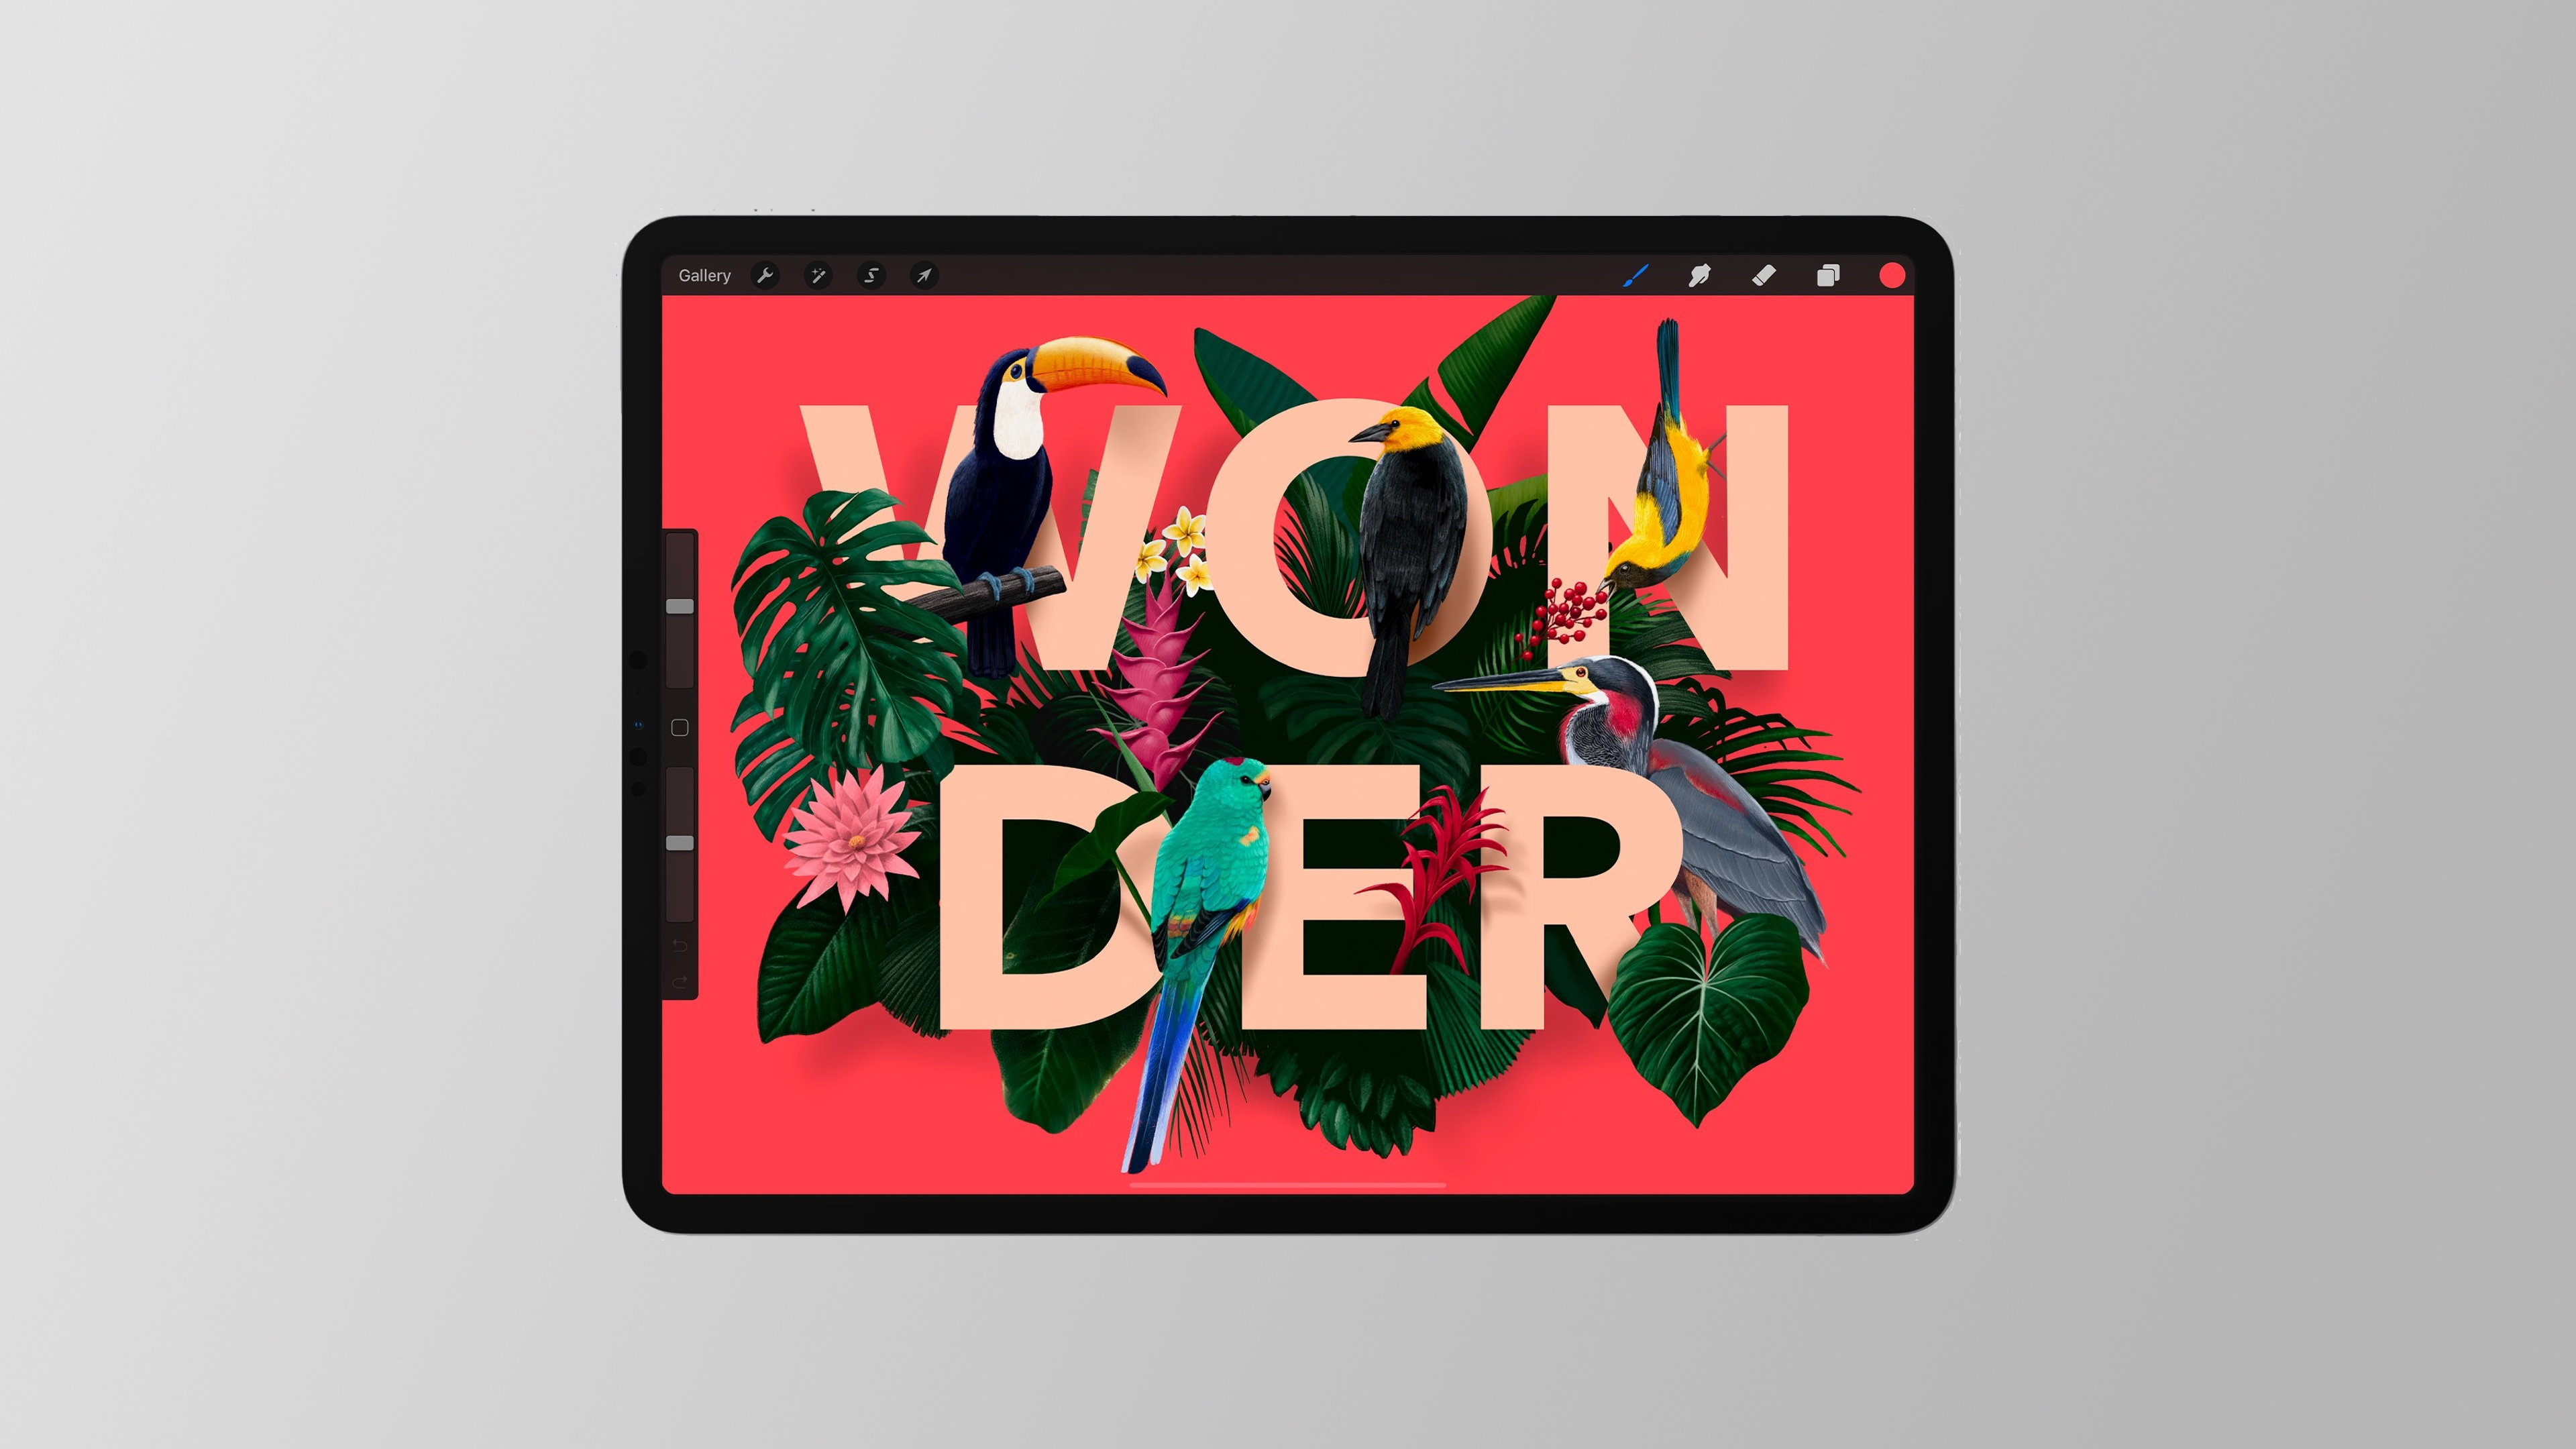 Procreate illustration app for iPad adds long-awaited Text features